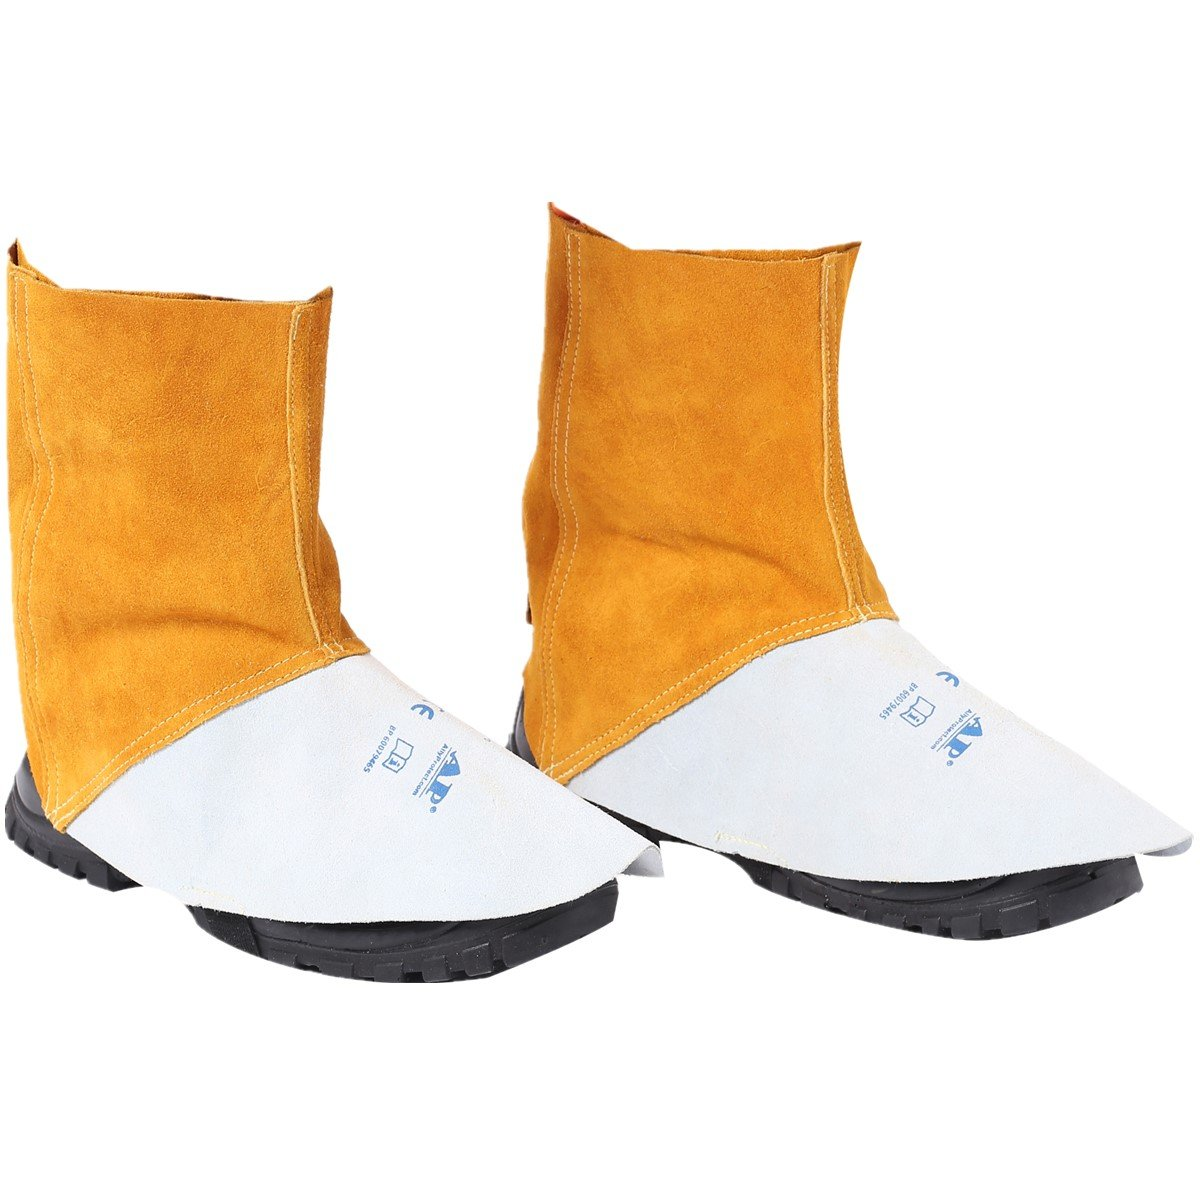 Welding Spats Safety Boot Flame Ranking TOP13 Cowhide Leather Resistant Direct sale of manufacturer Worki